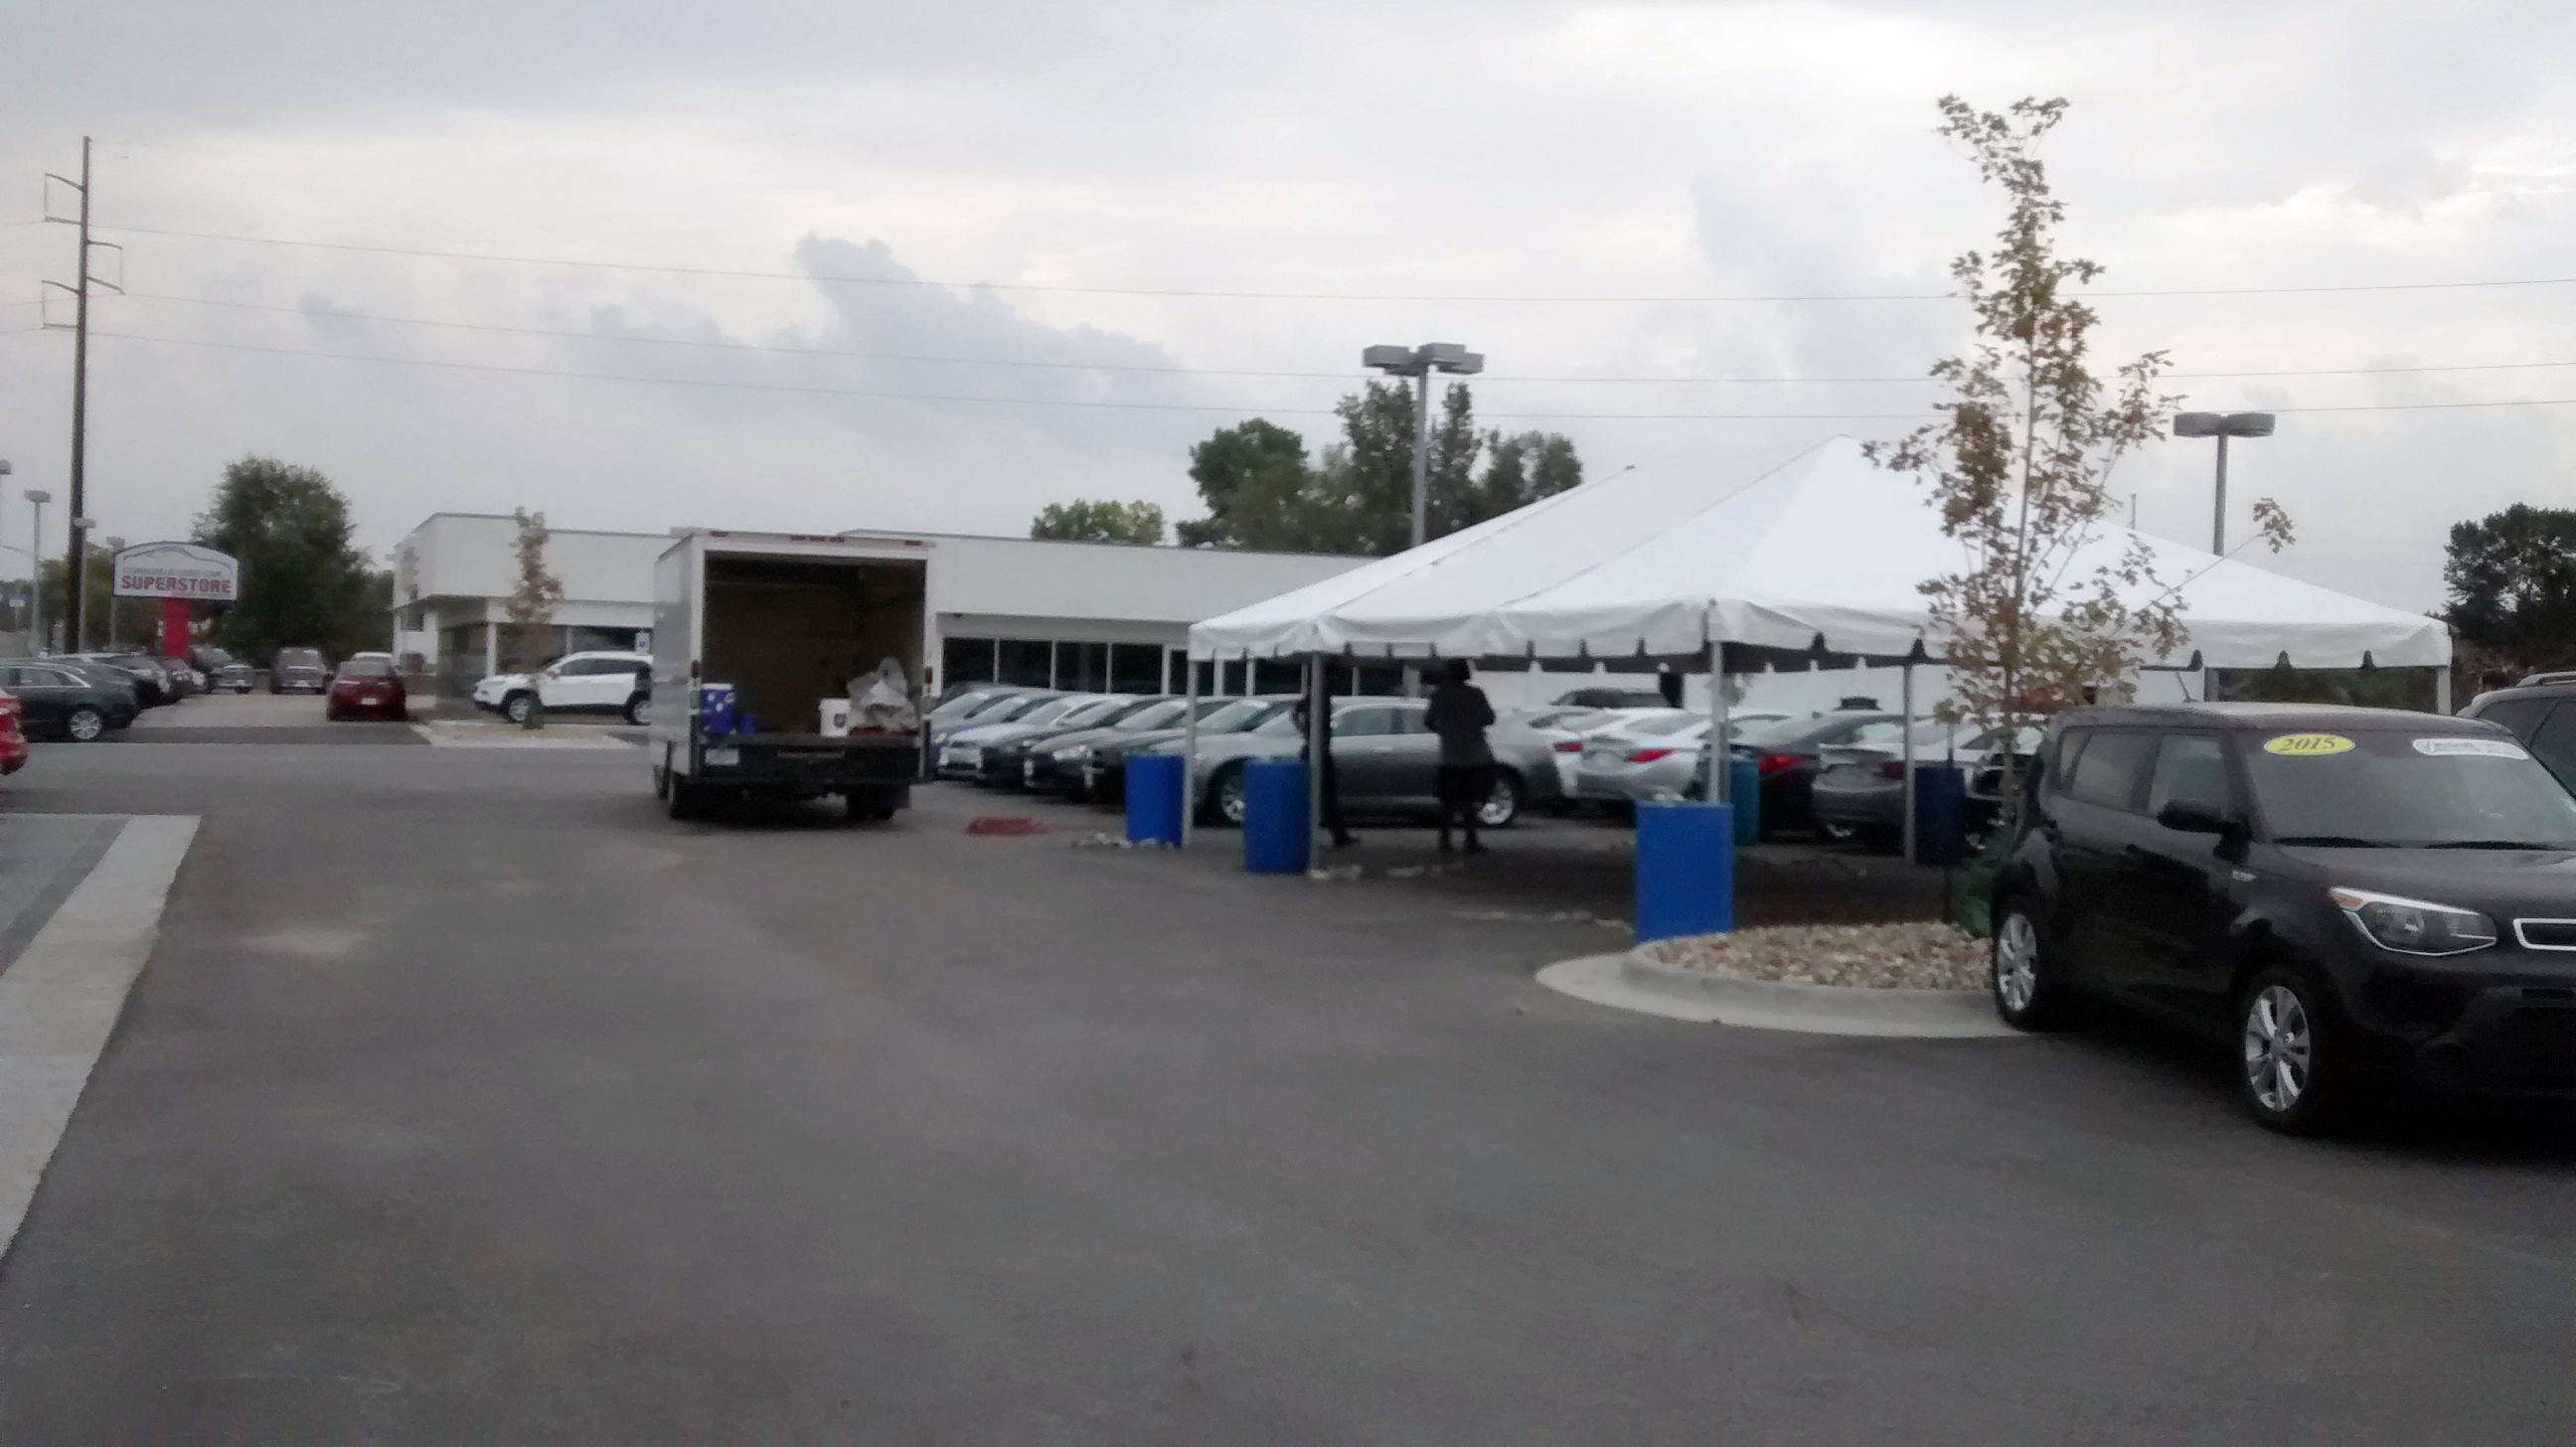 Setting up 20′ x 30′ frame tent for the grand re-opening at Coralville Used Car Superstore